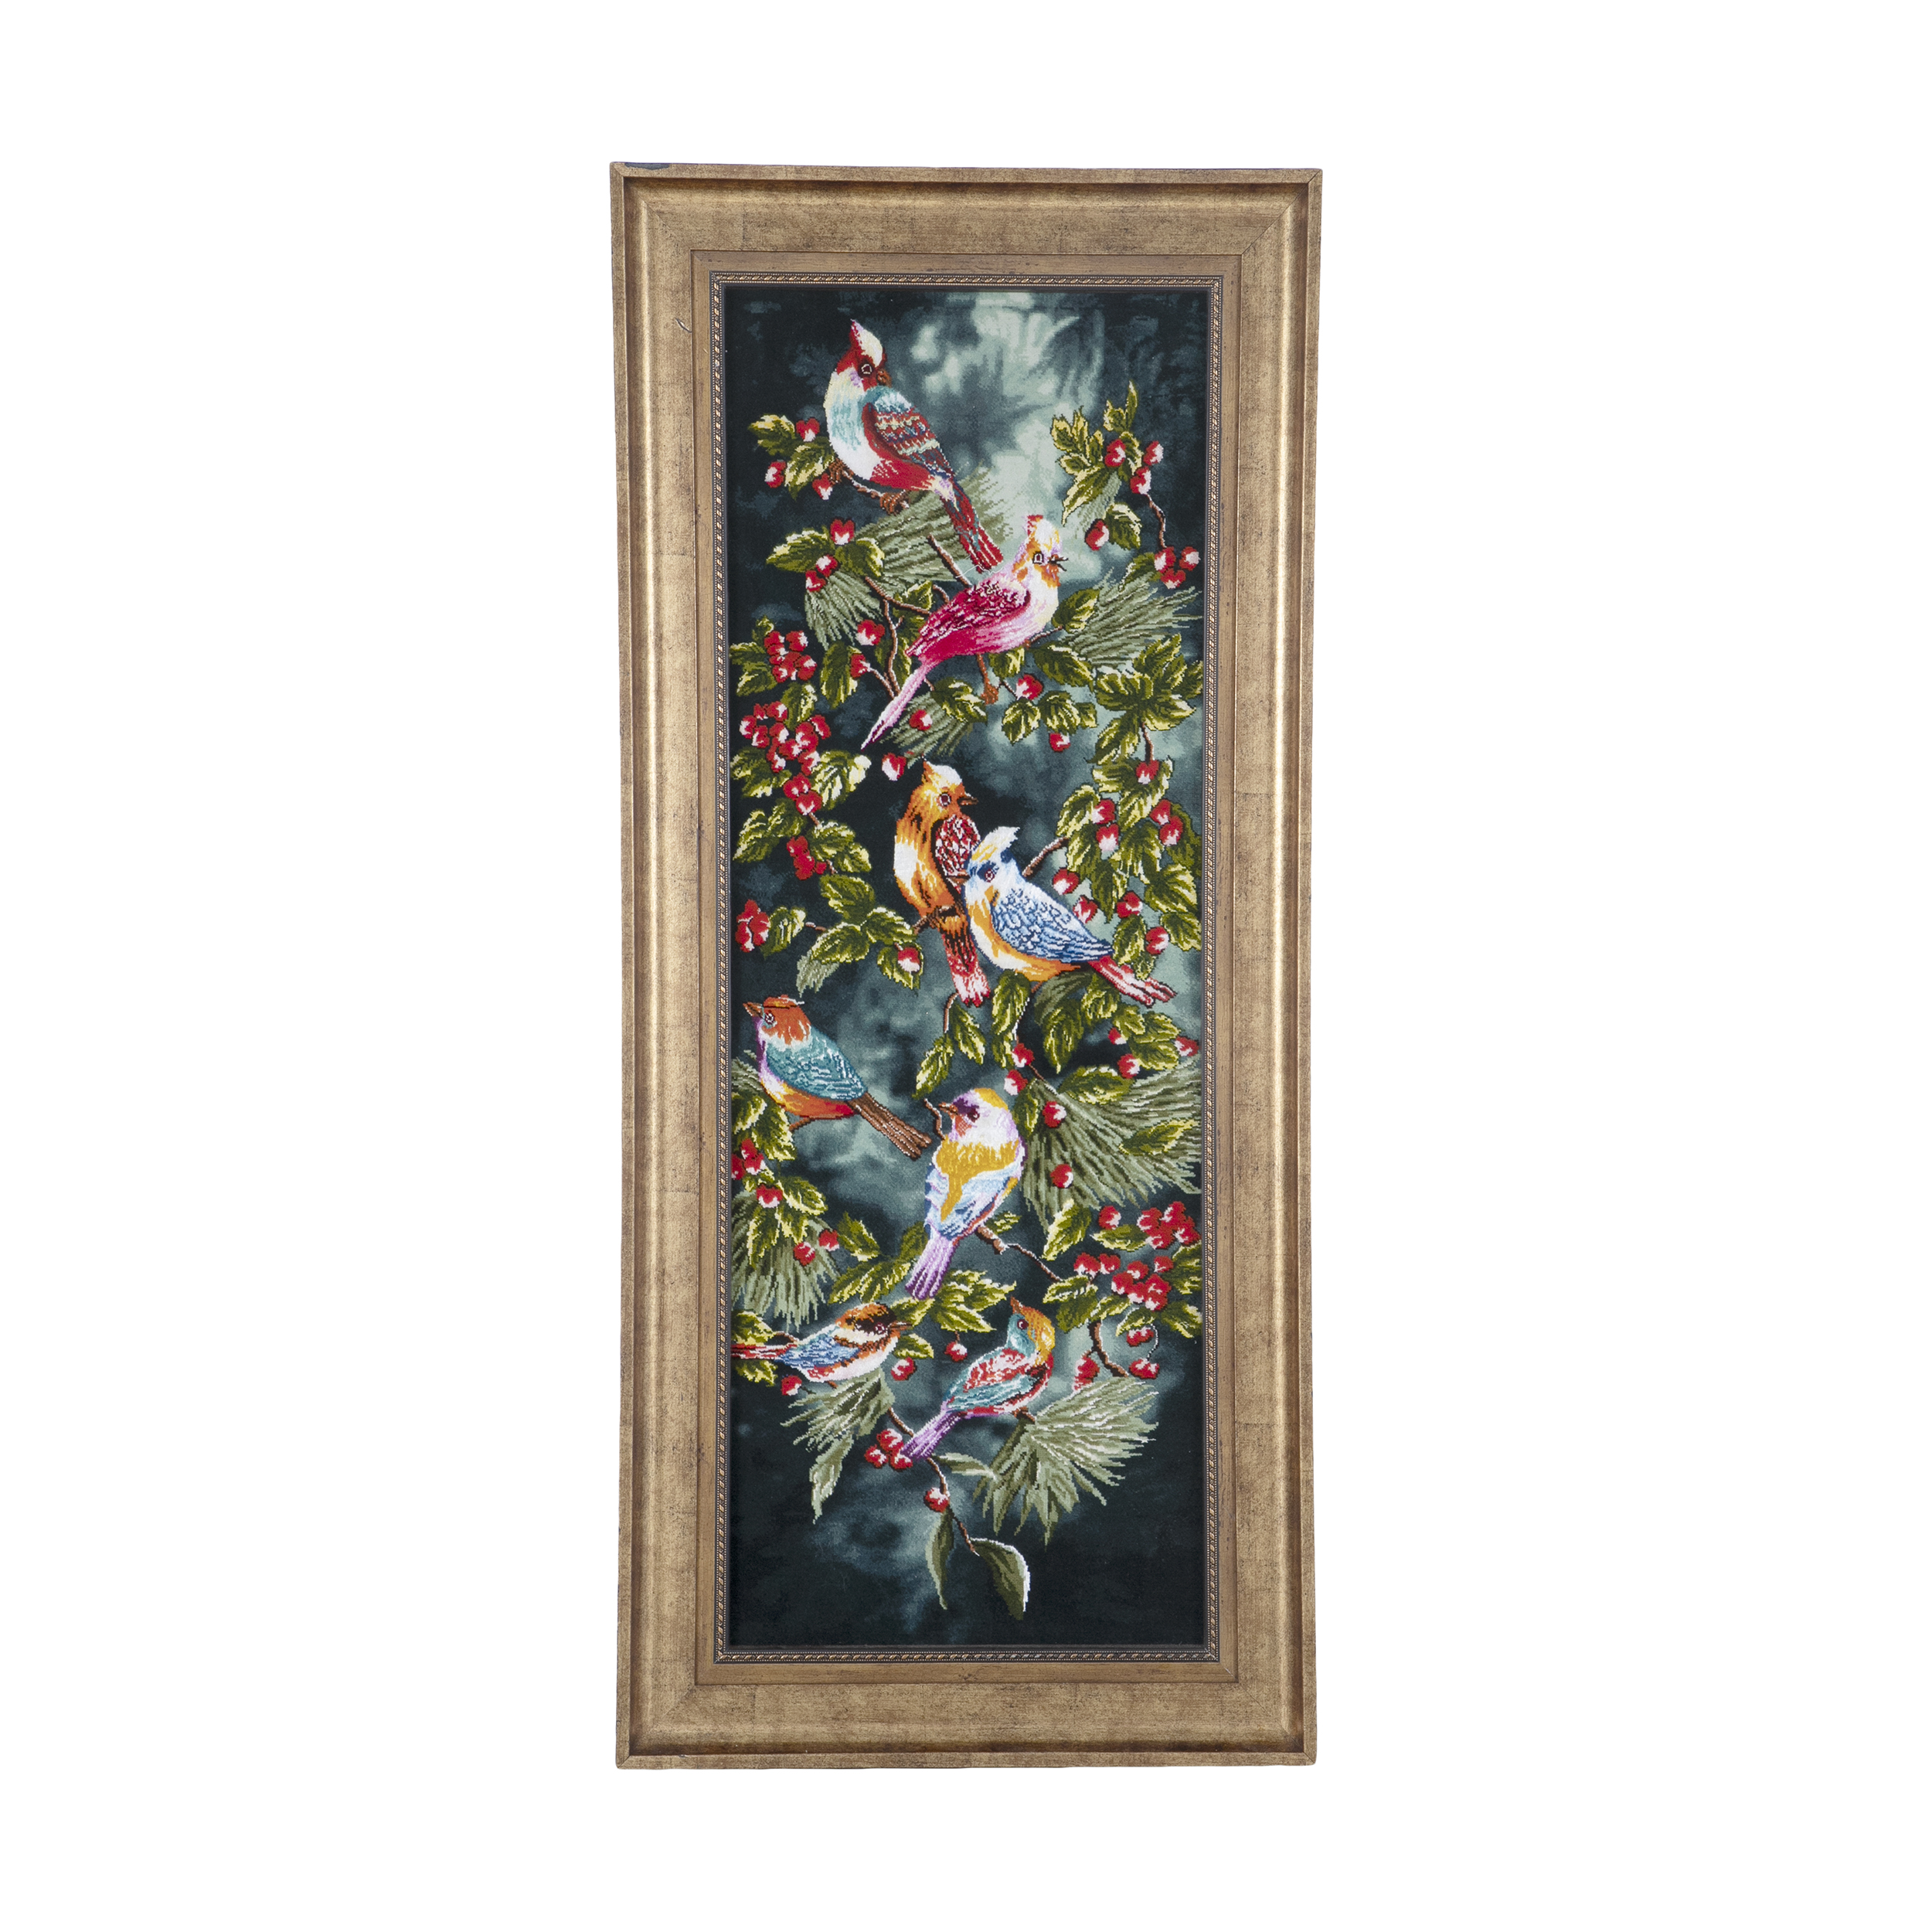 Handmade Persian bird carpet tableau, A10 Model